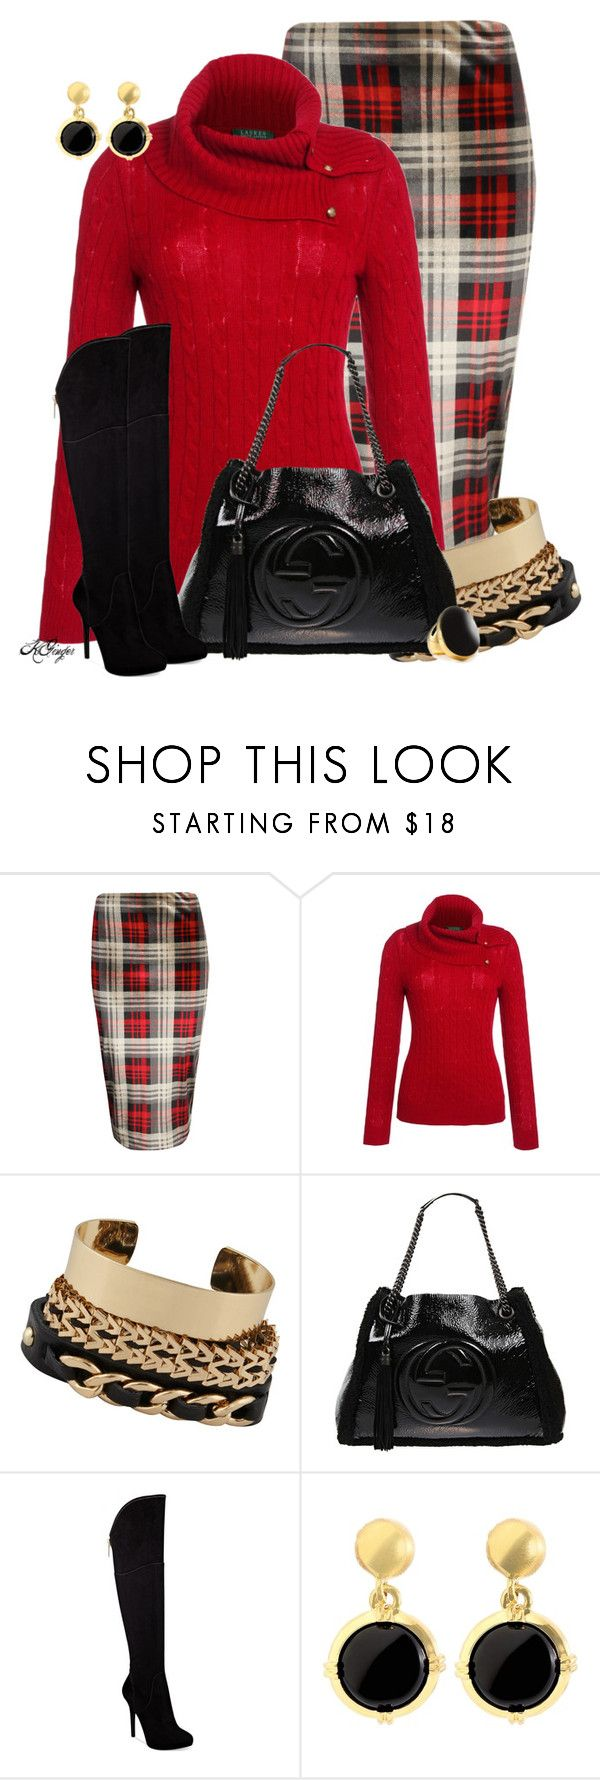 """Classy Cable Knit Sweater Contest"" by kginger ❤ liked on Polyvore featuring Boohoo, Lauren Ralph Lauren, ALDO, Gucci, GUESS, Brooks Brothers and Kenneth Jay Lane"